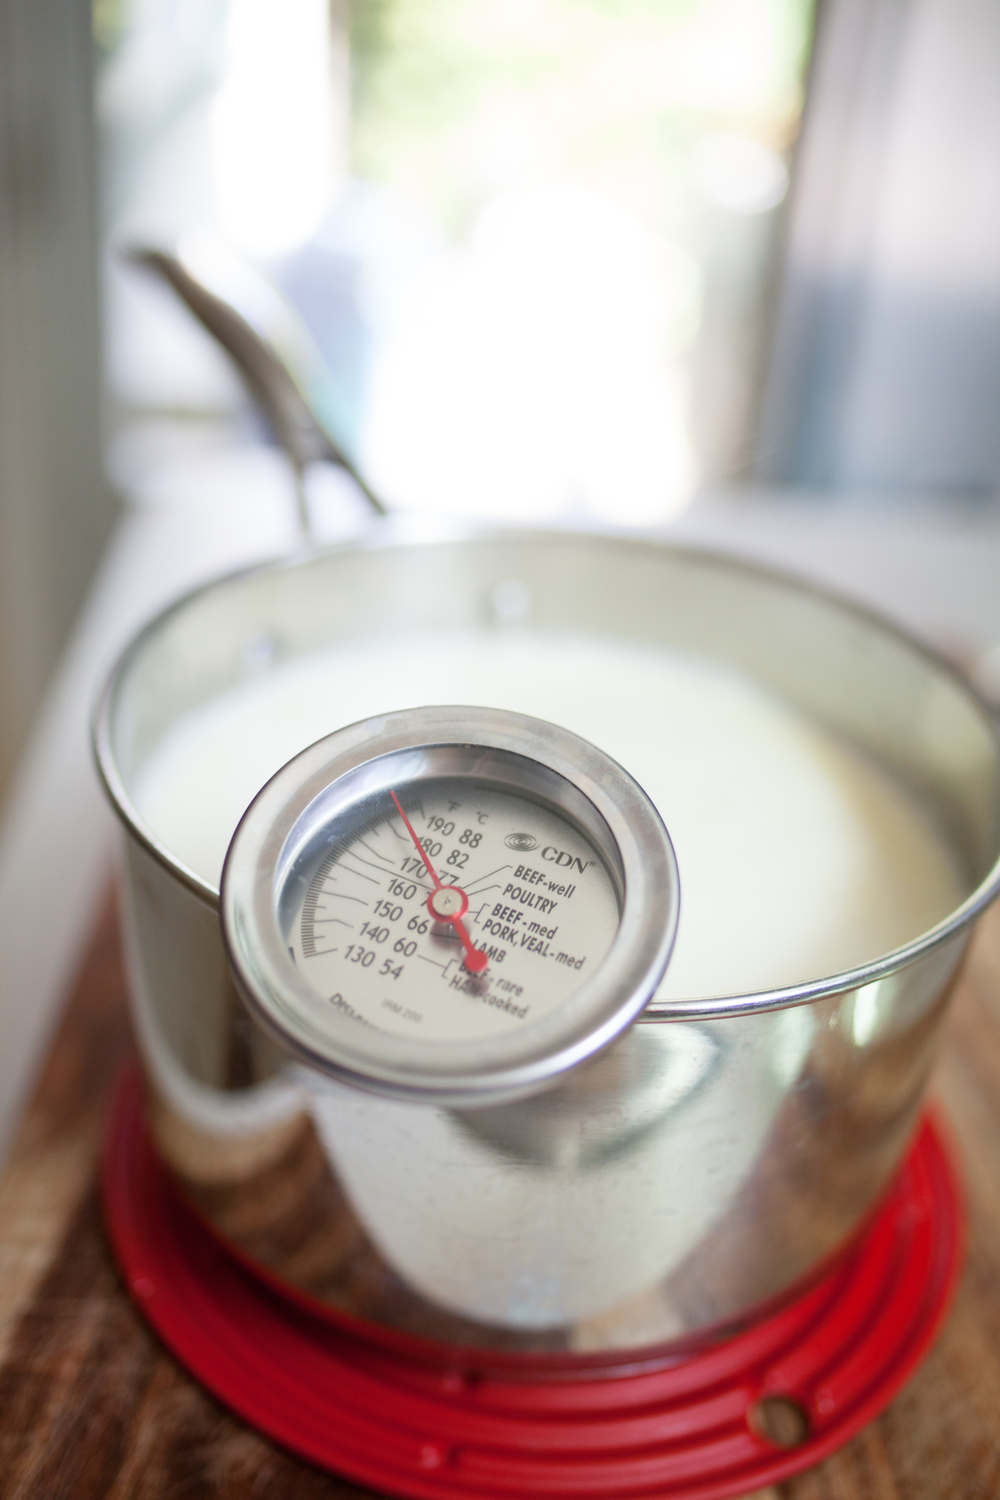 Once your stove temperature reaches 180 F, remove from heat, and let the temperature cool.  Once your milk reaches 108-112 degrees Fahrenheit, add in your leftover yogurt or yogurt culture starter and mix thoroughly.